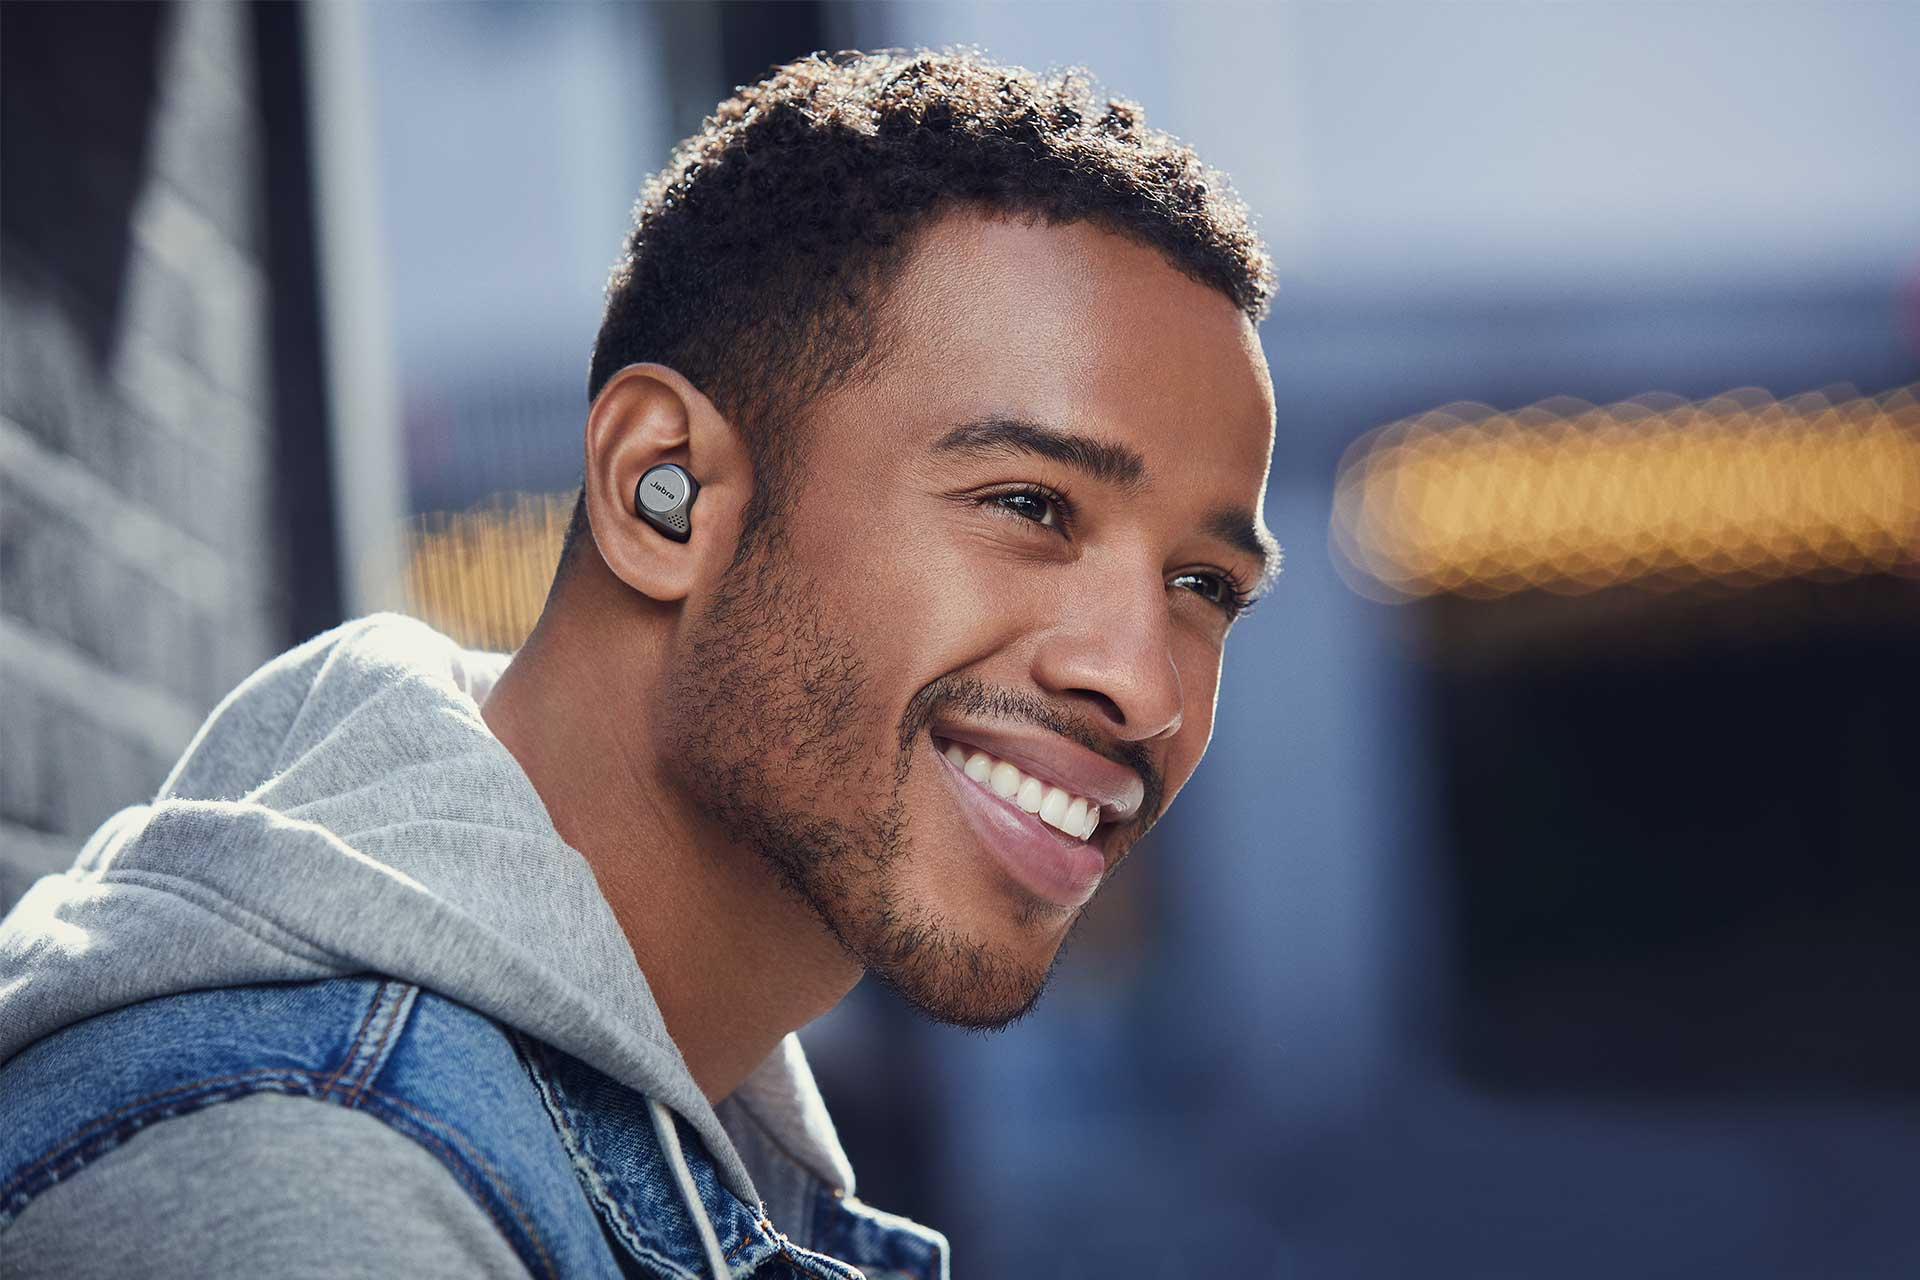 Jabra Elite 75t True Wireless Earbuds for Active Lifestyle - Male Model Smiling